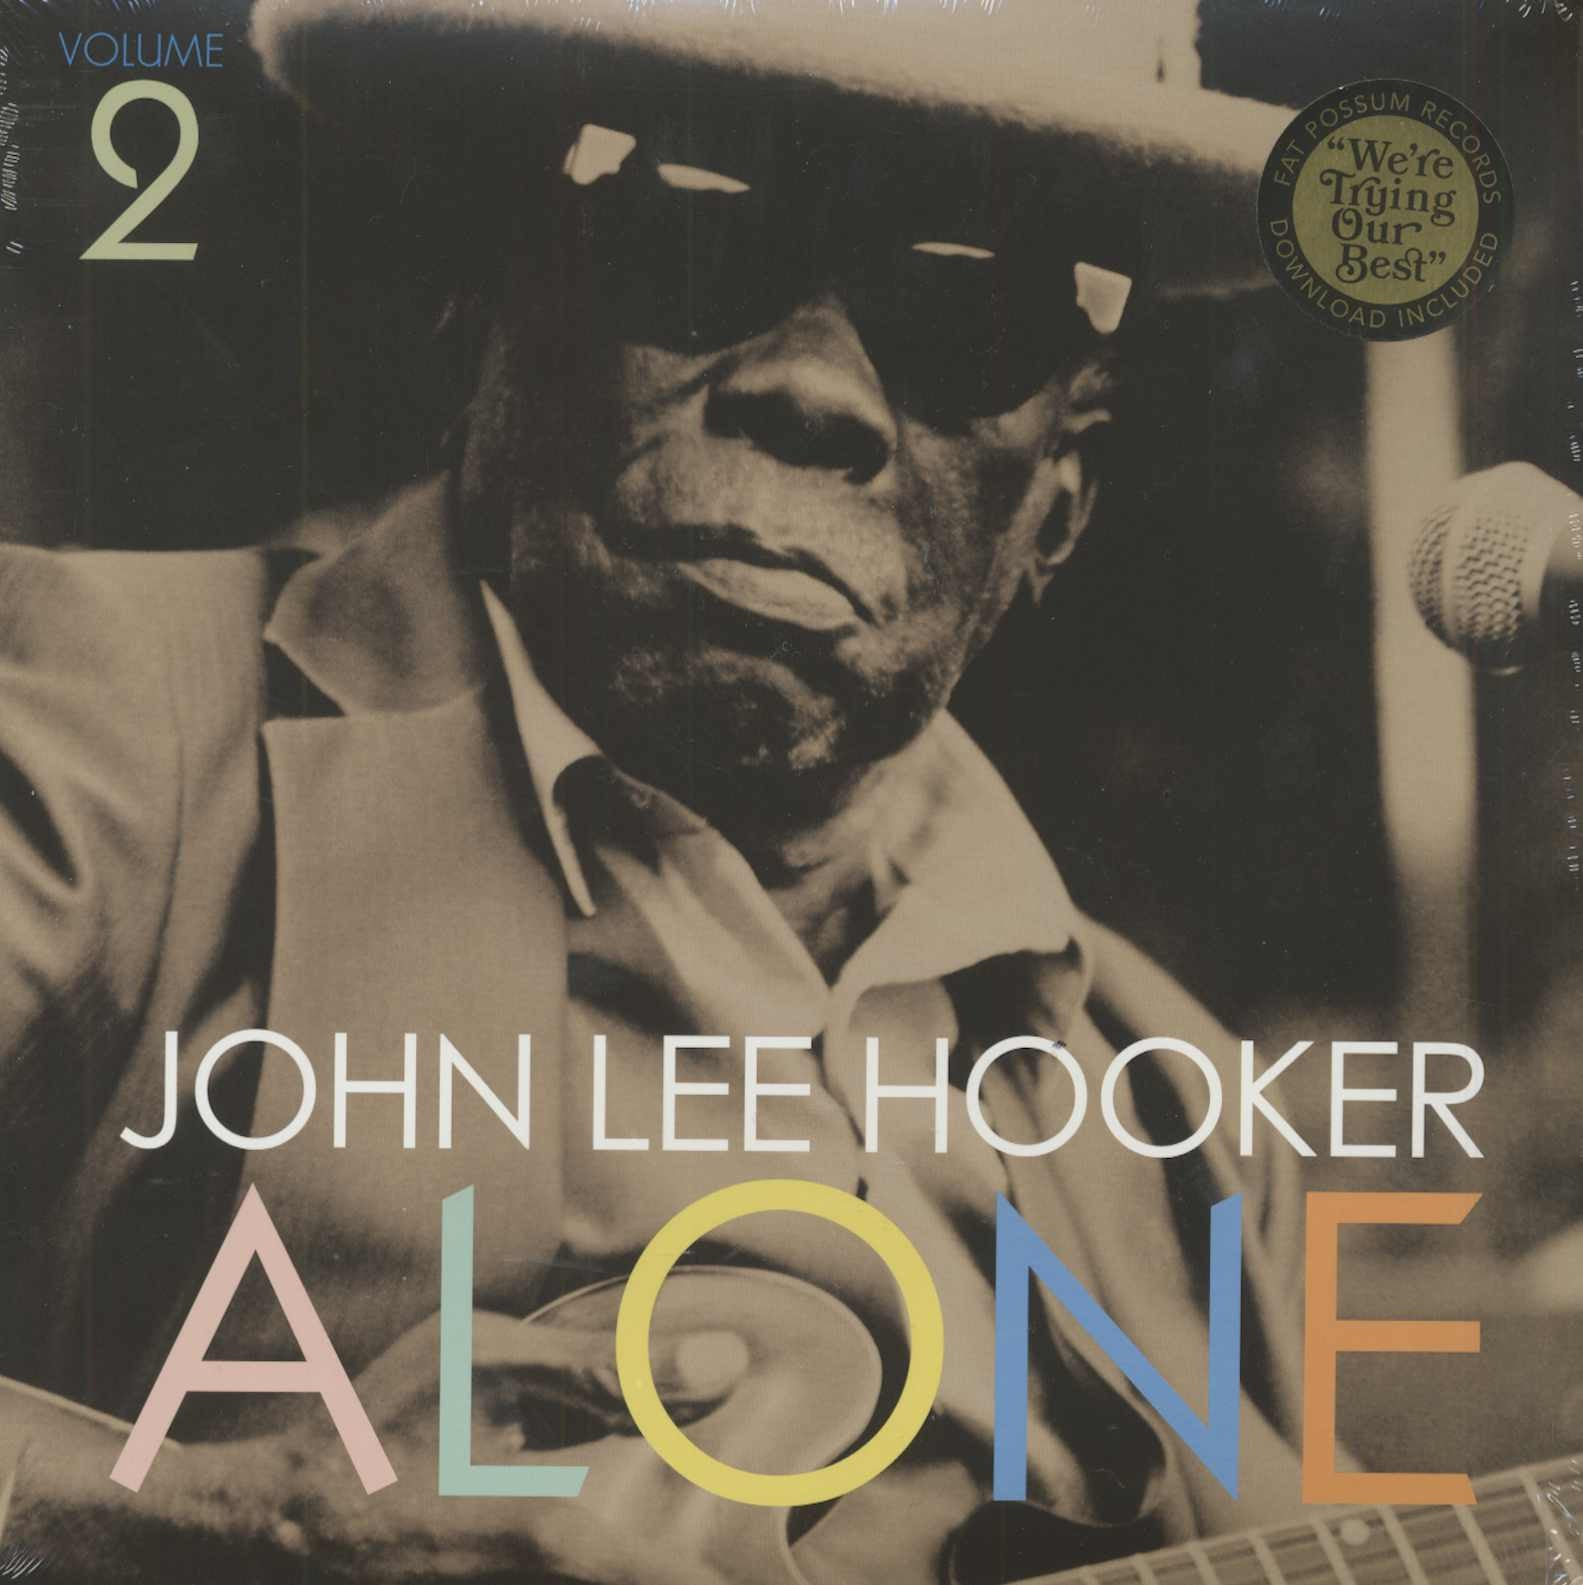 John Lee Hooker ‎– Alone (Volume 2) - New Lp Record 2016 USA Vinyl & Download - Delta Blues